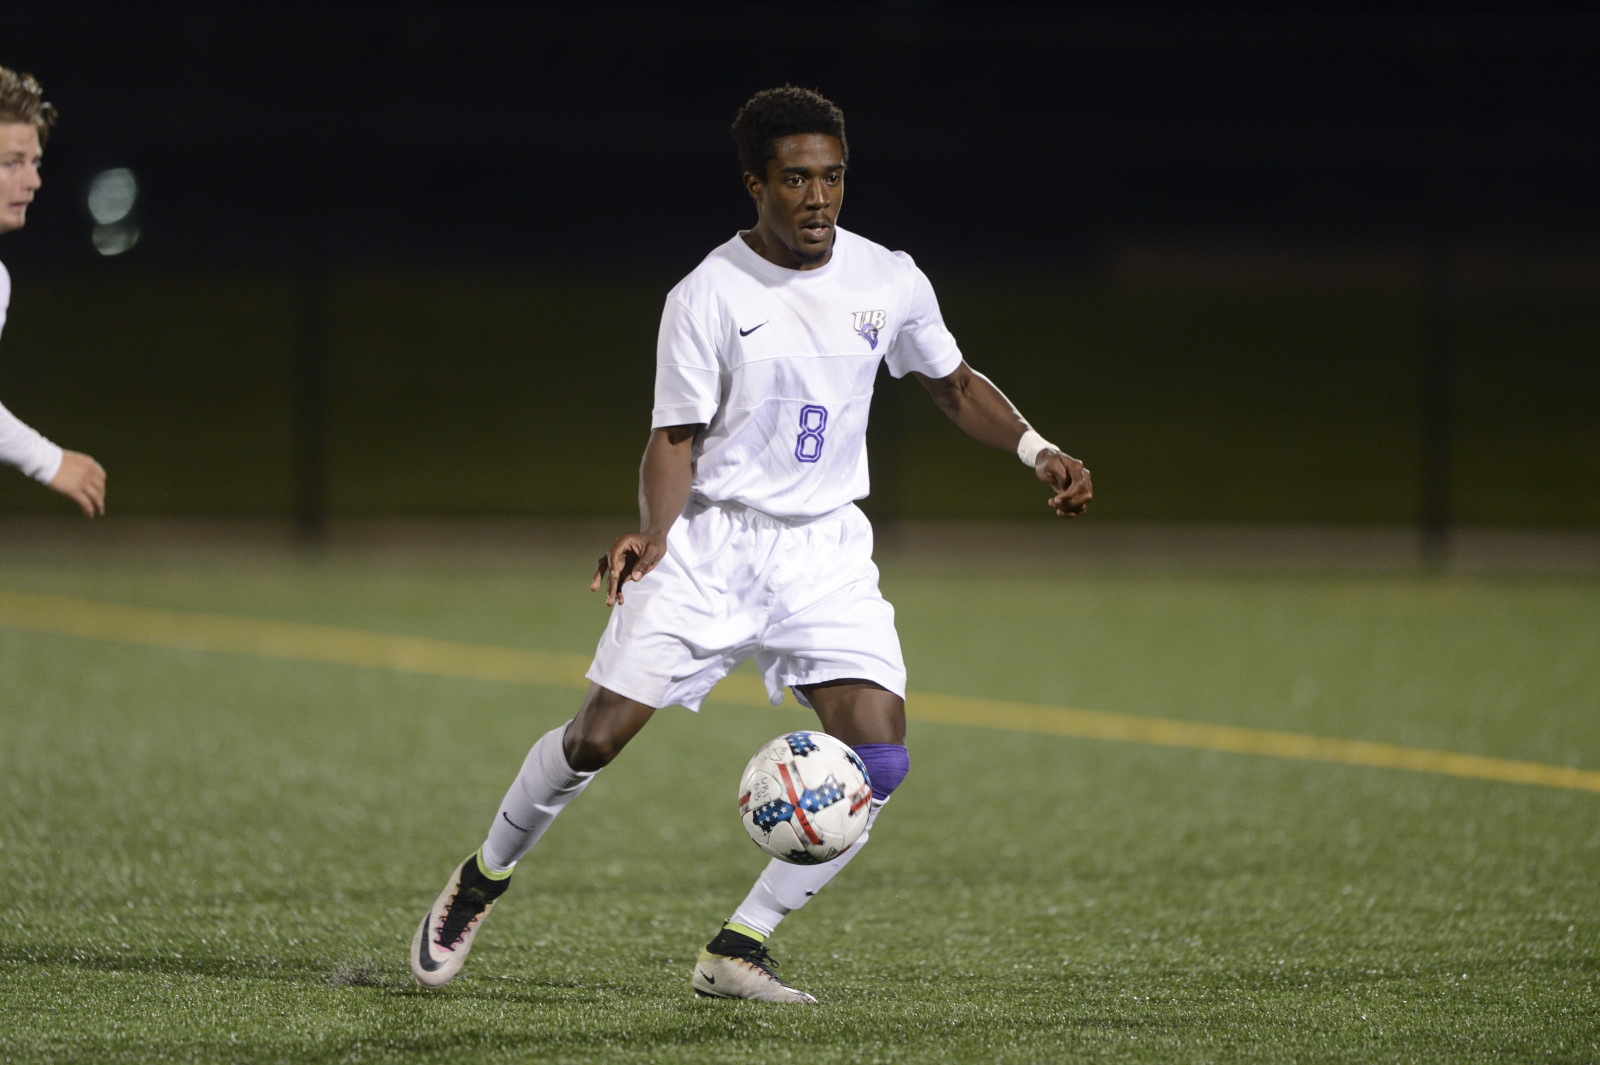 Men's Soccer Scores Late But Falls To Wilmington (Del.), 2-1